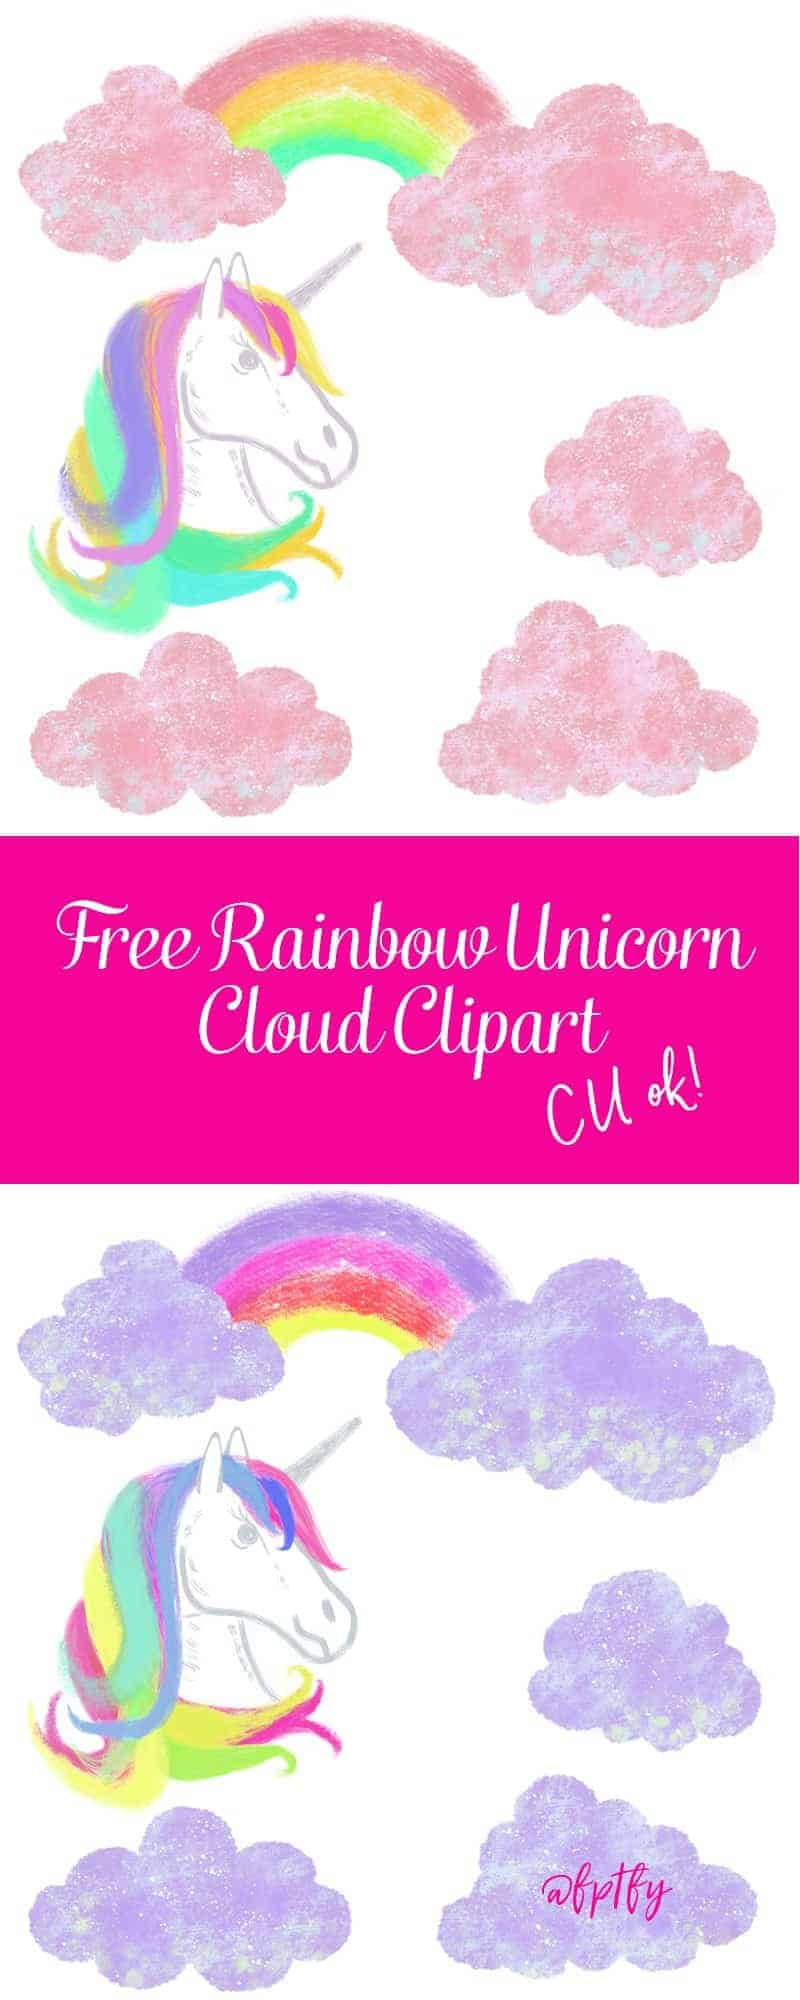 free-rainbow-unicorn-clouds-clipart